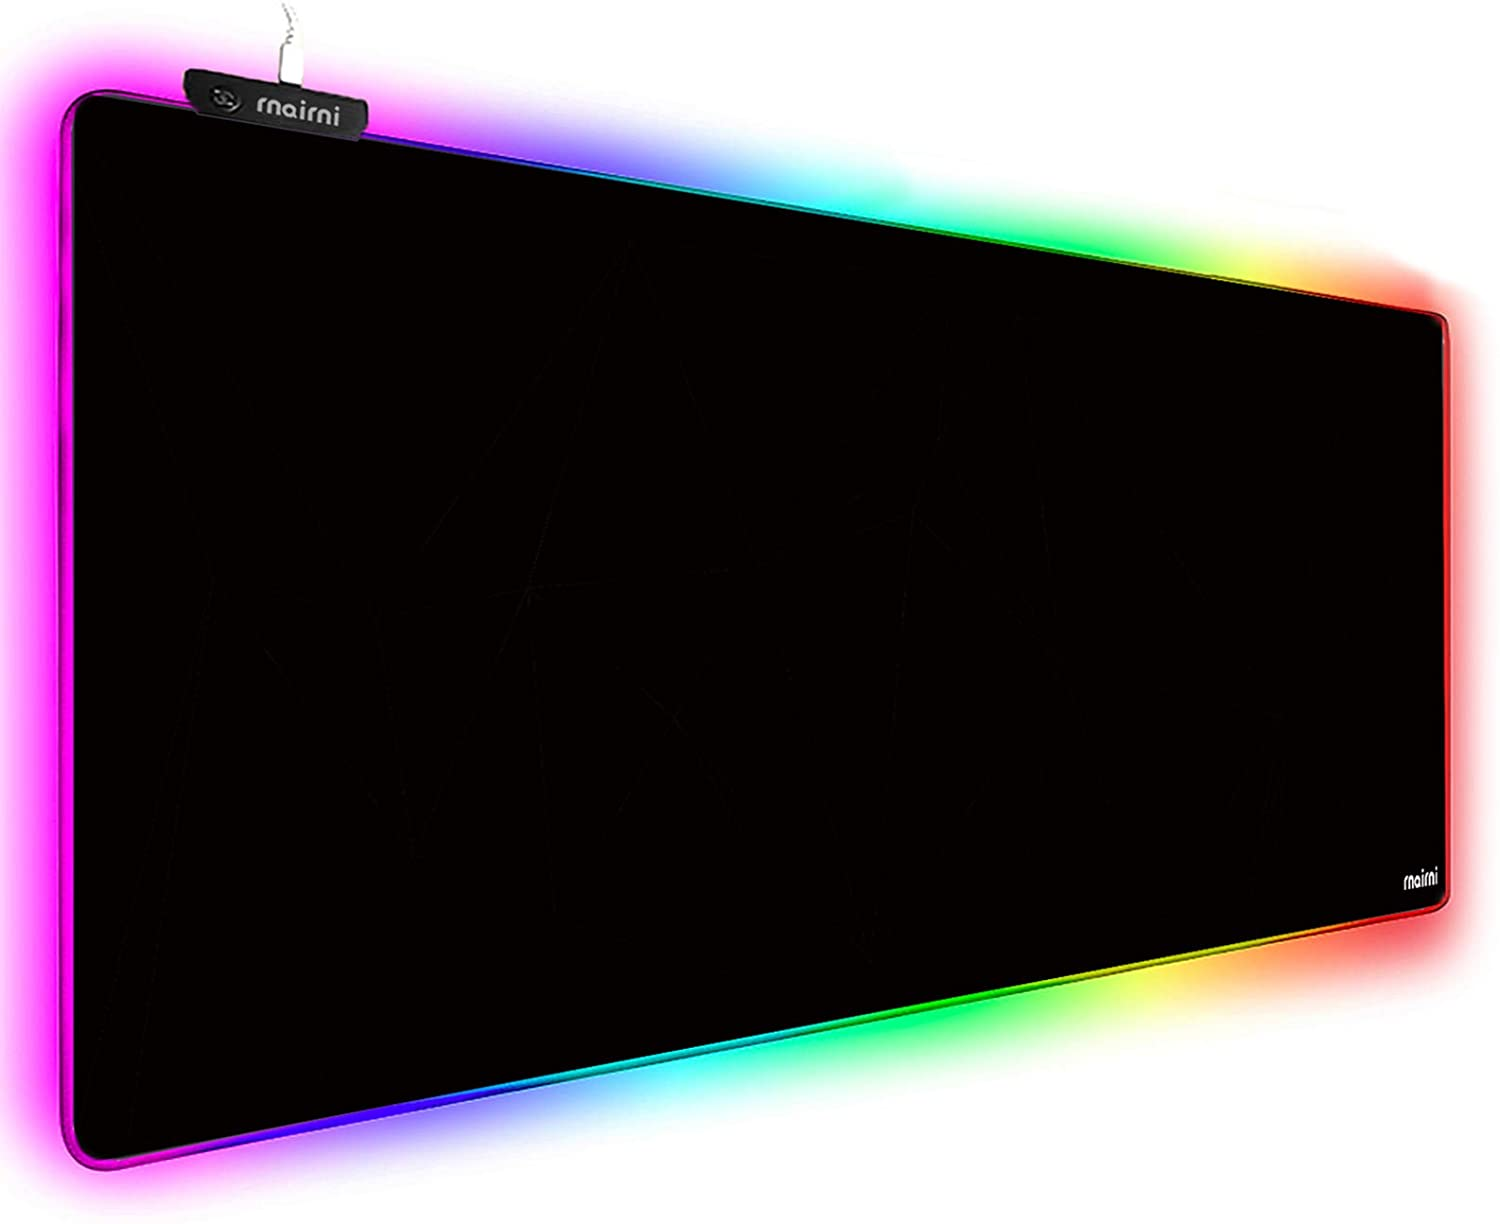 """Extended RGB Gaming Mouse Pad, Extra Large Gaming Mouse Mat for Gamer, Waterproof Office DEST Mat with 10 Lighting Mode, for PC Computer RGB Keyboard Mouse MacBook - 31.5'' x 11.8"""" x 4mm (Black)"""